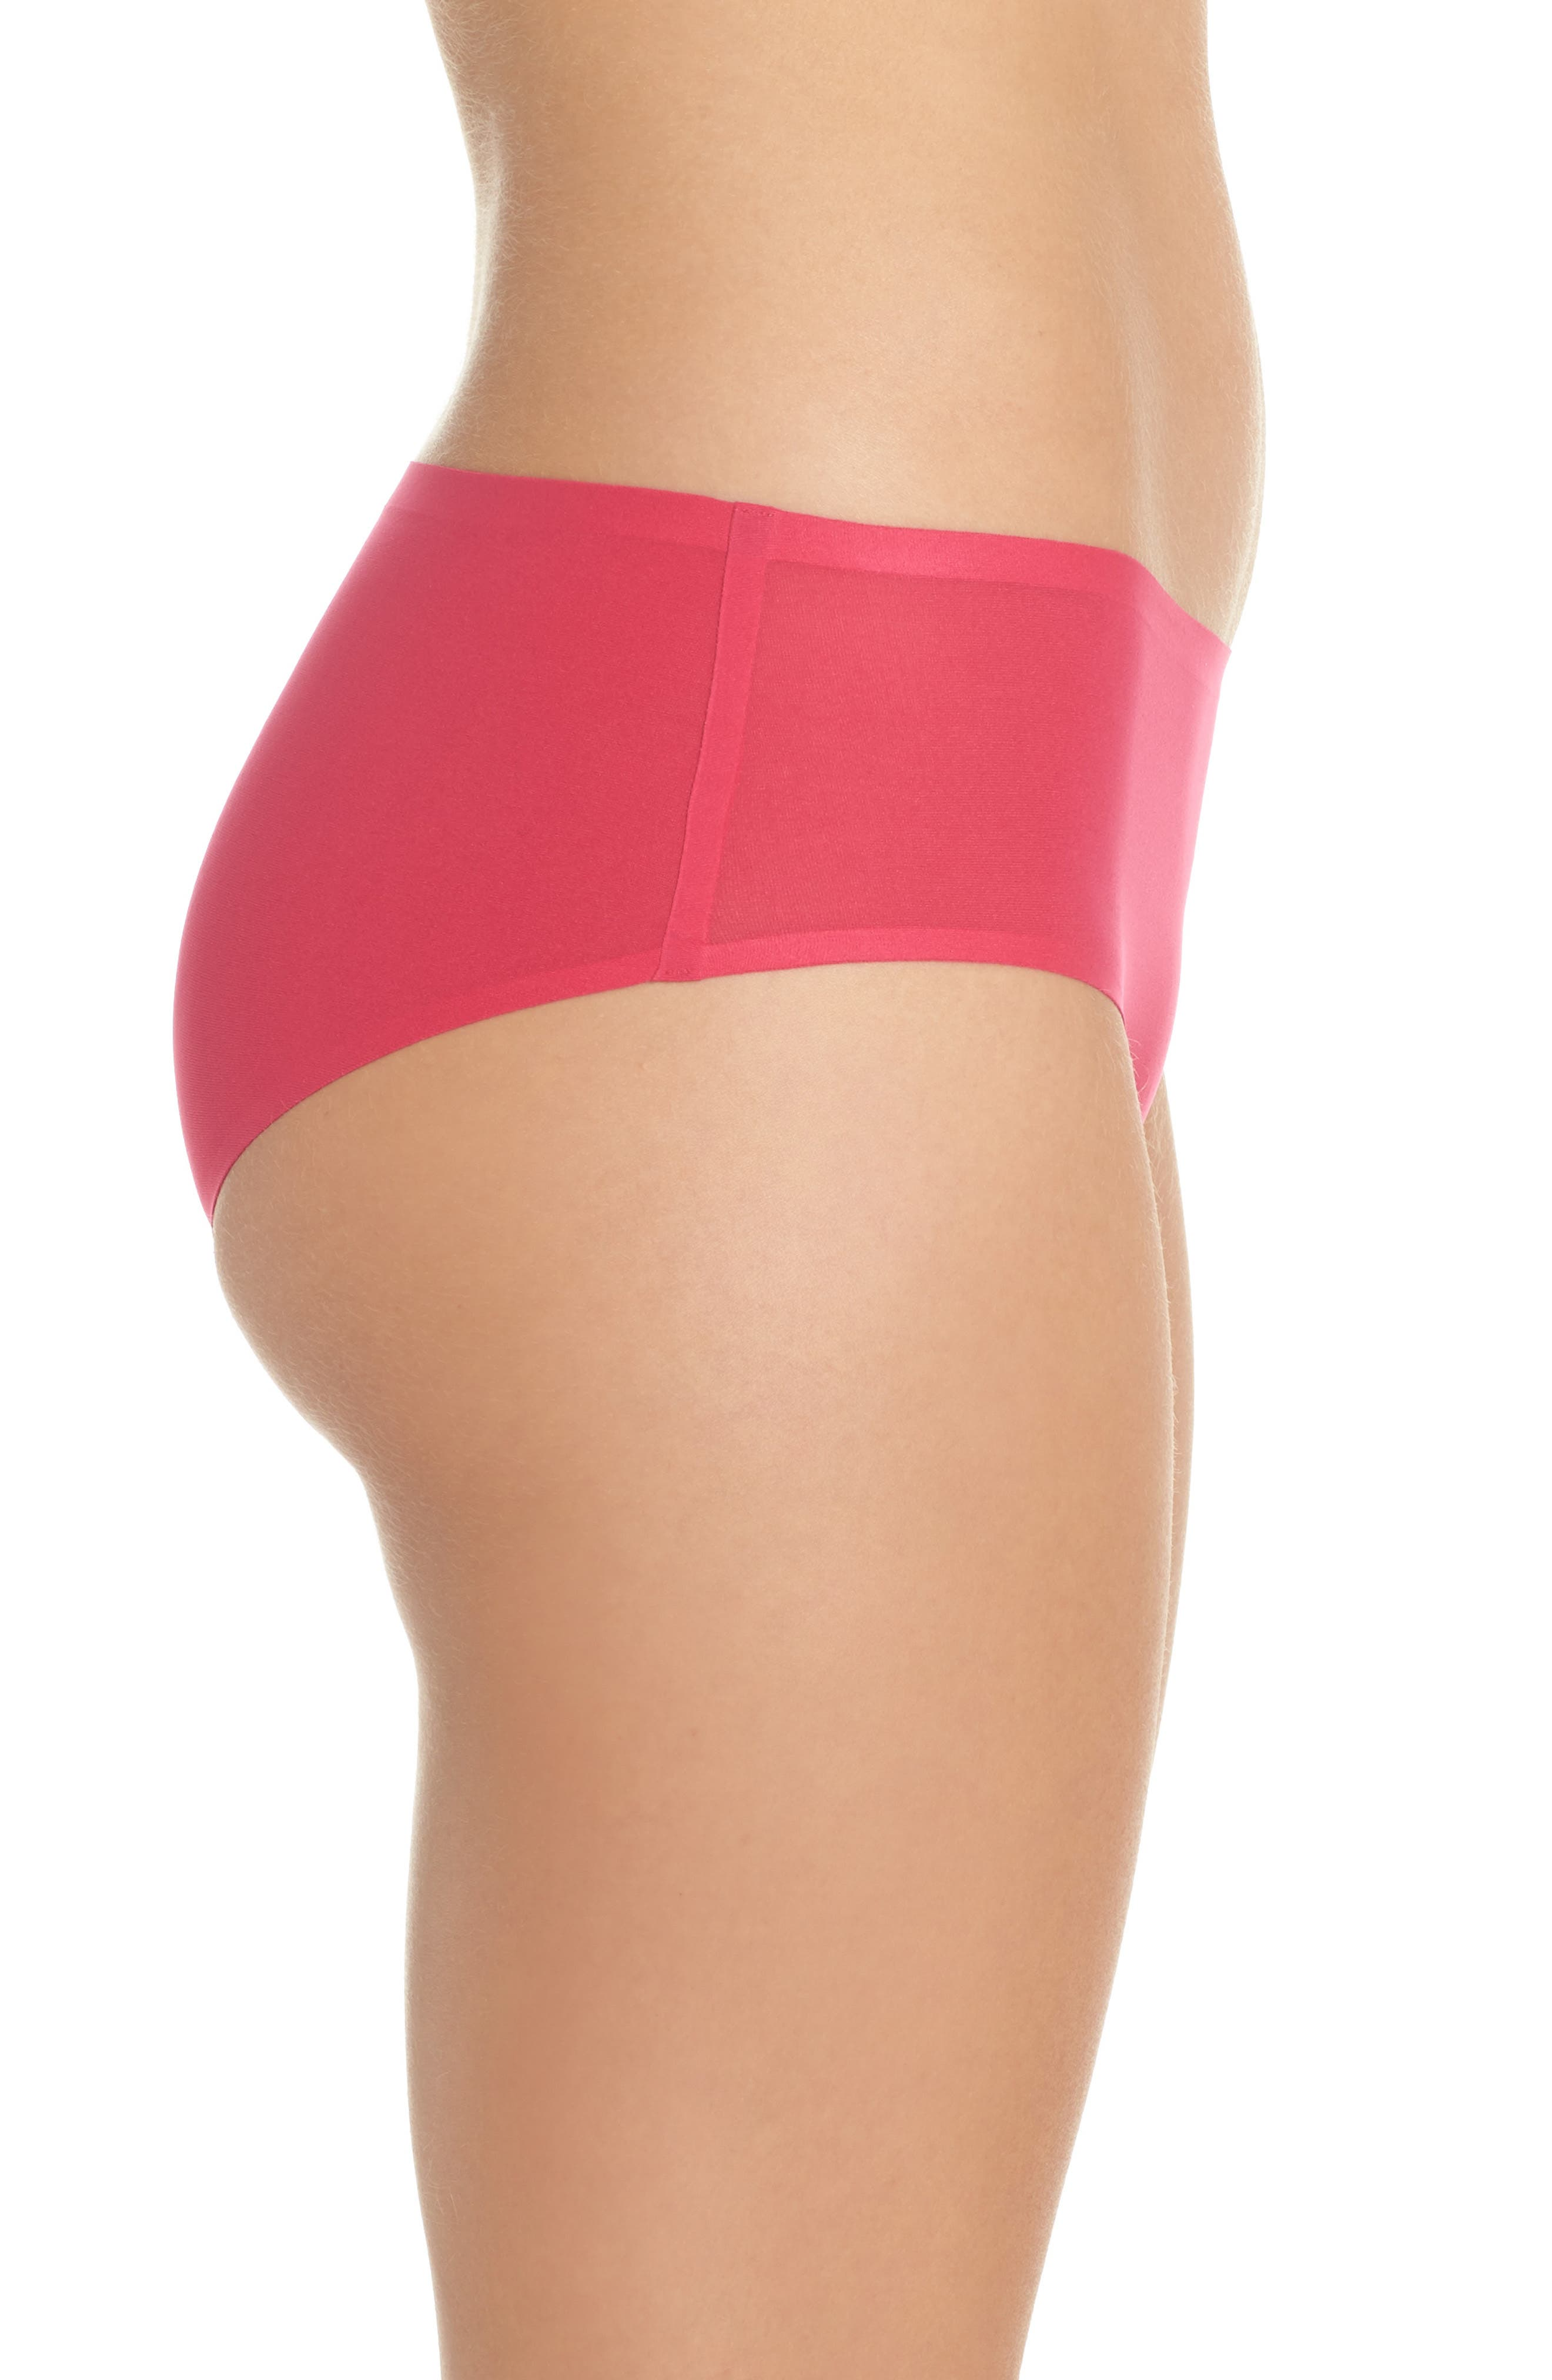 Soft Stretch Seamless Hipster Panties,                             Alternate thumbnail 3, color,                             Raspberry